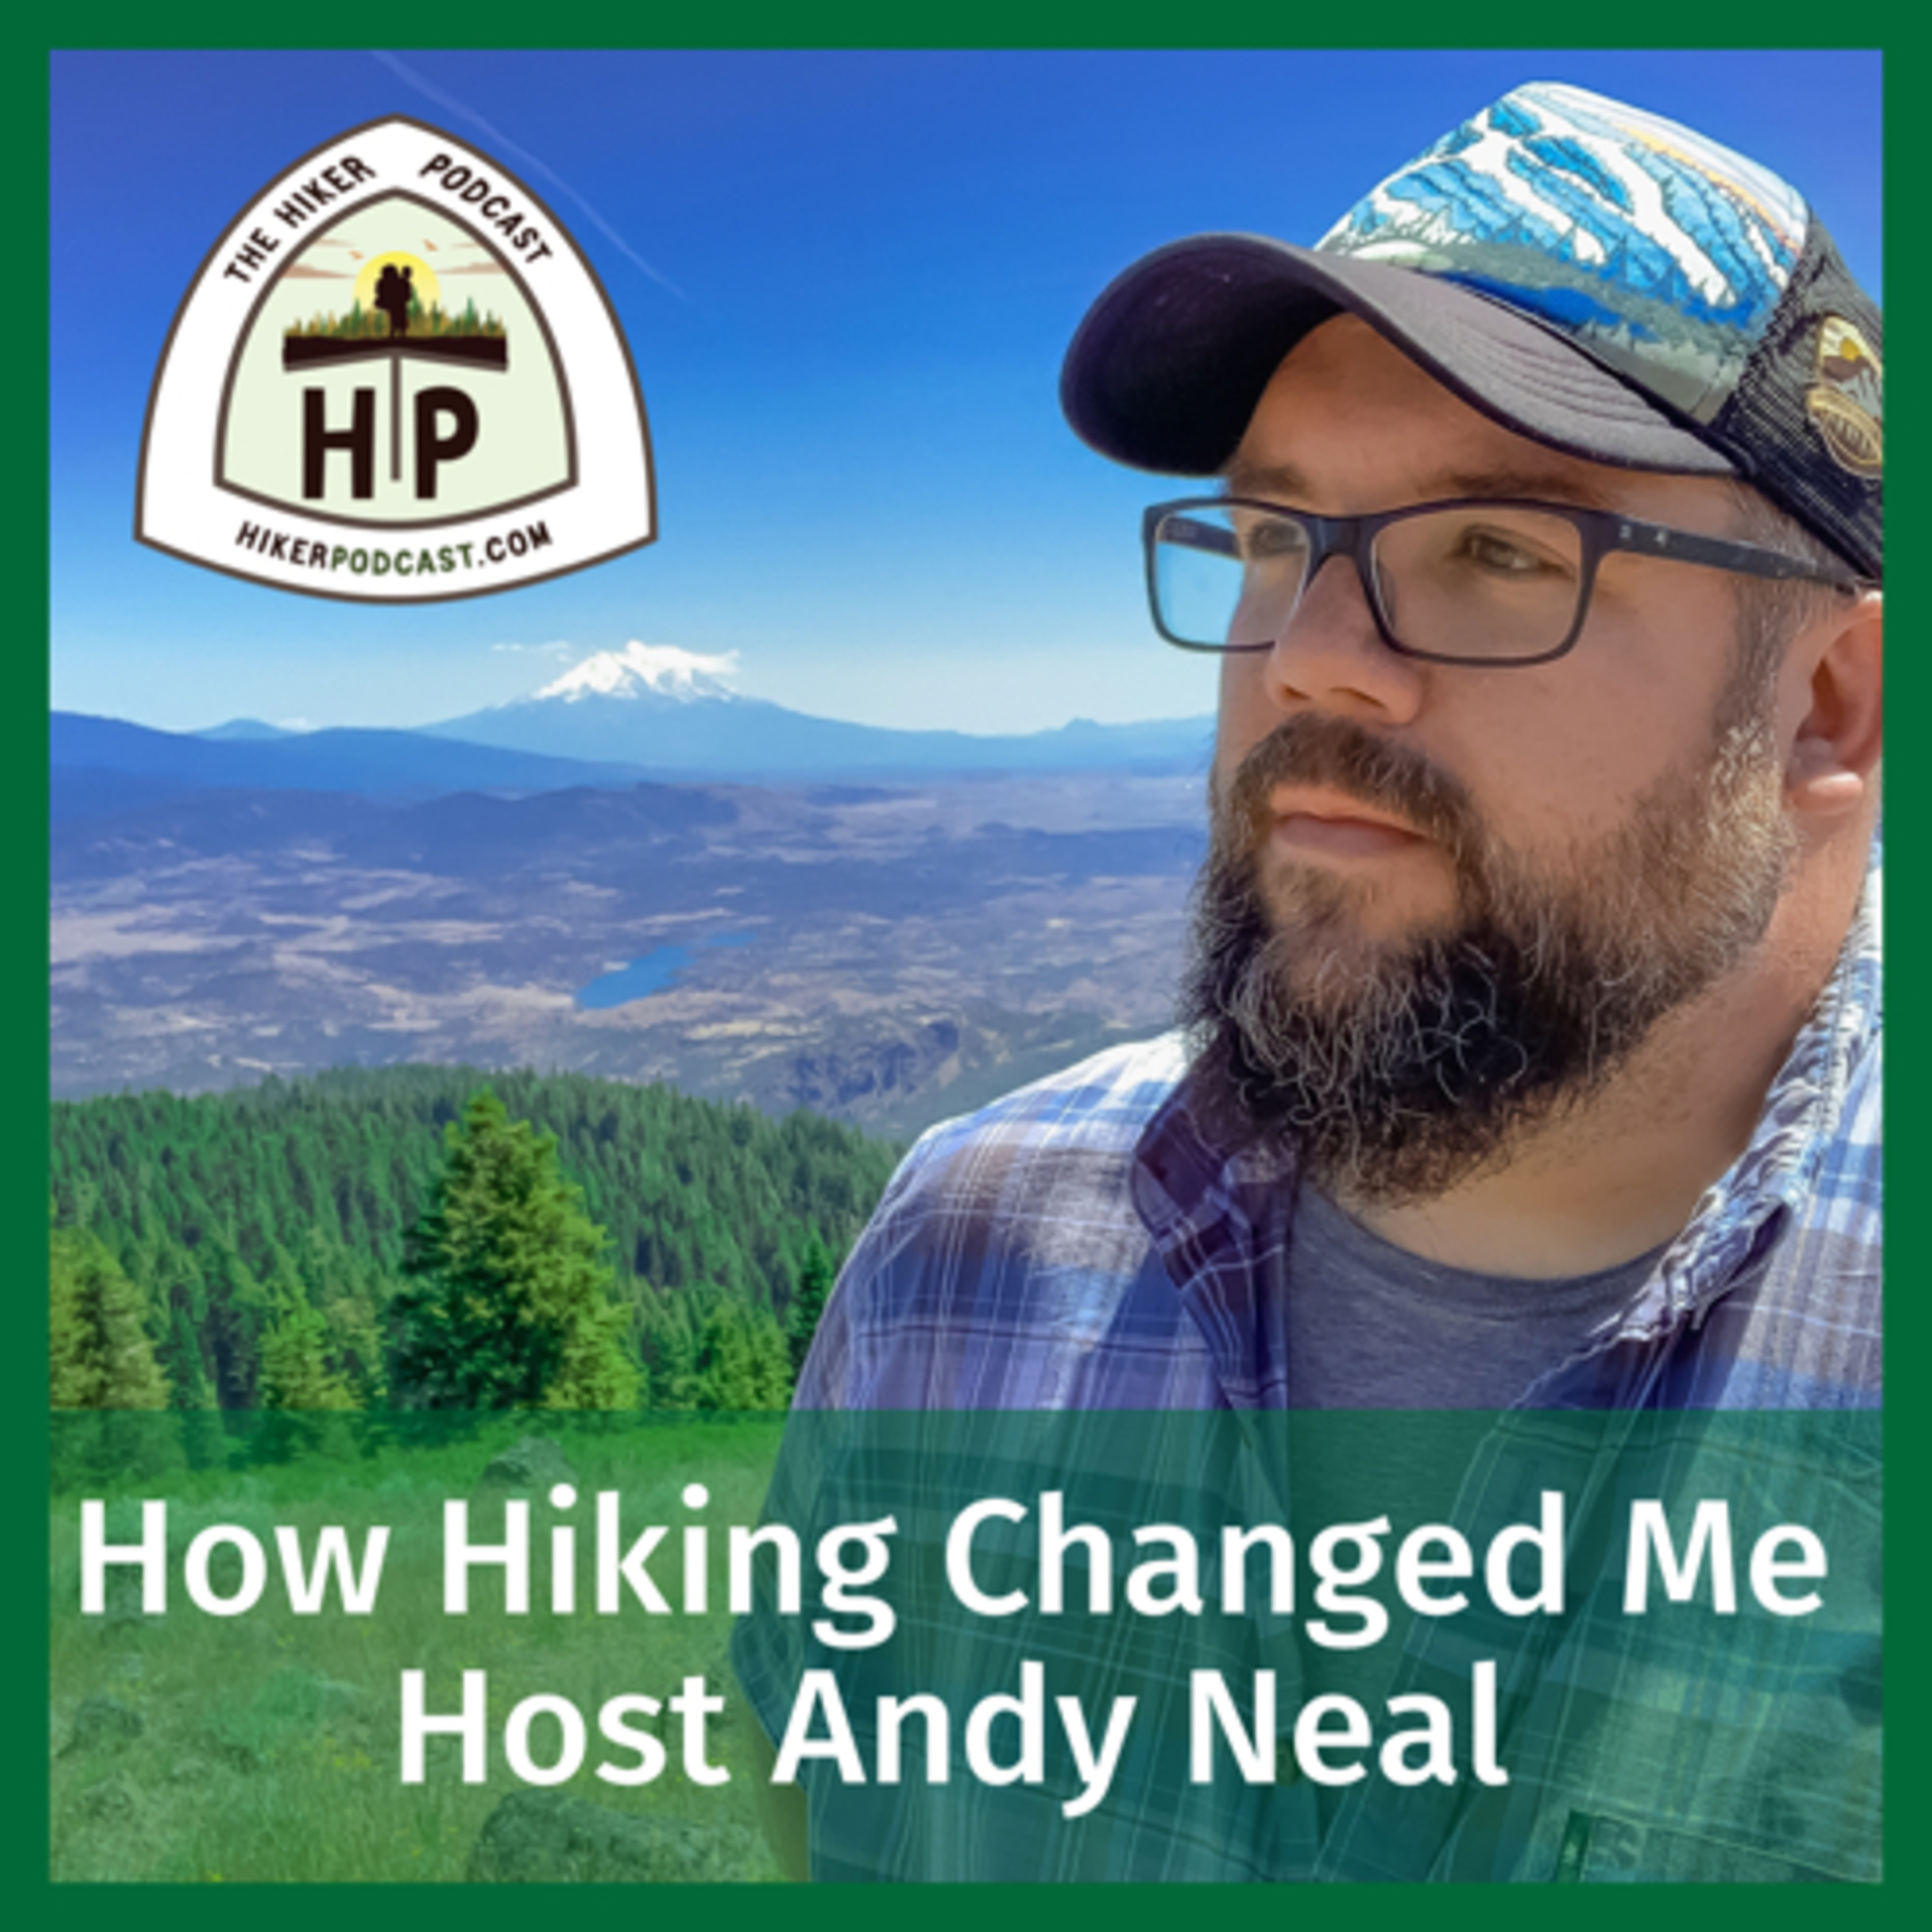 How Hiking Changed Me | The Hiker Podcast Episode 1